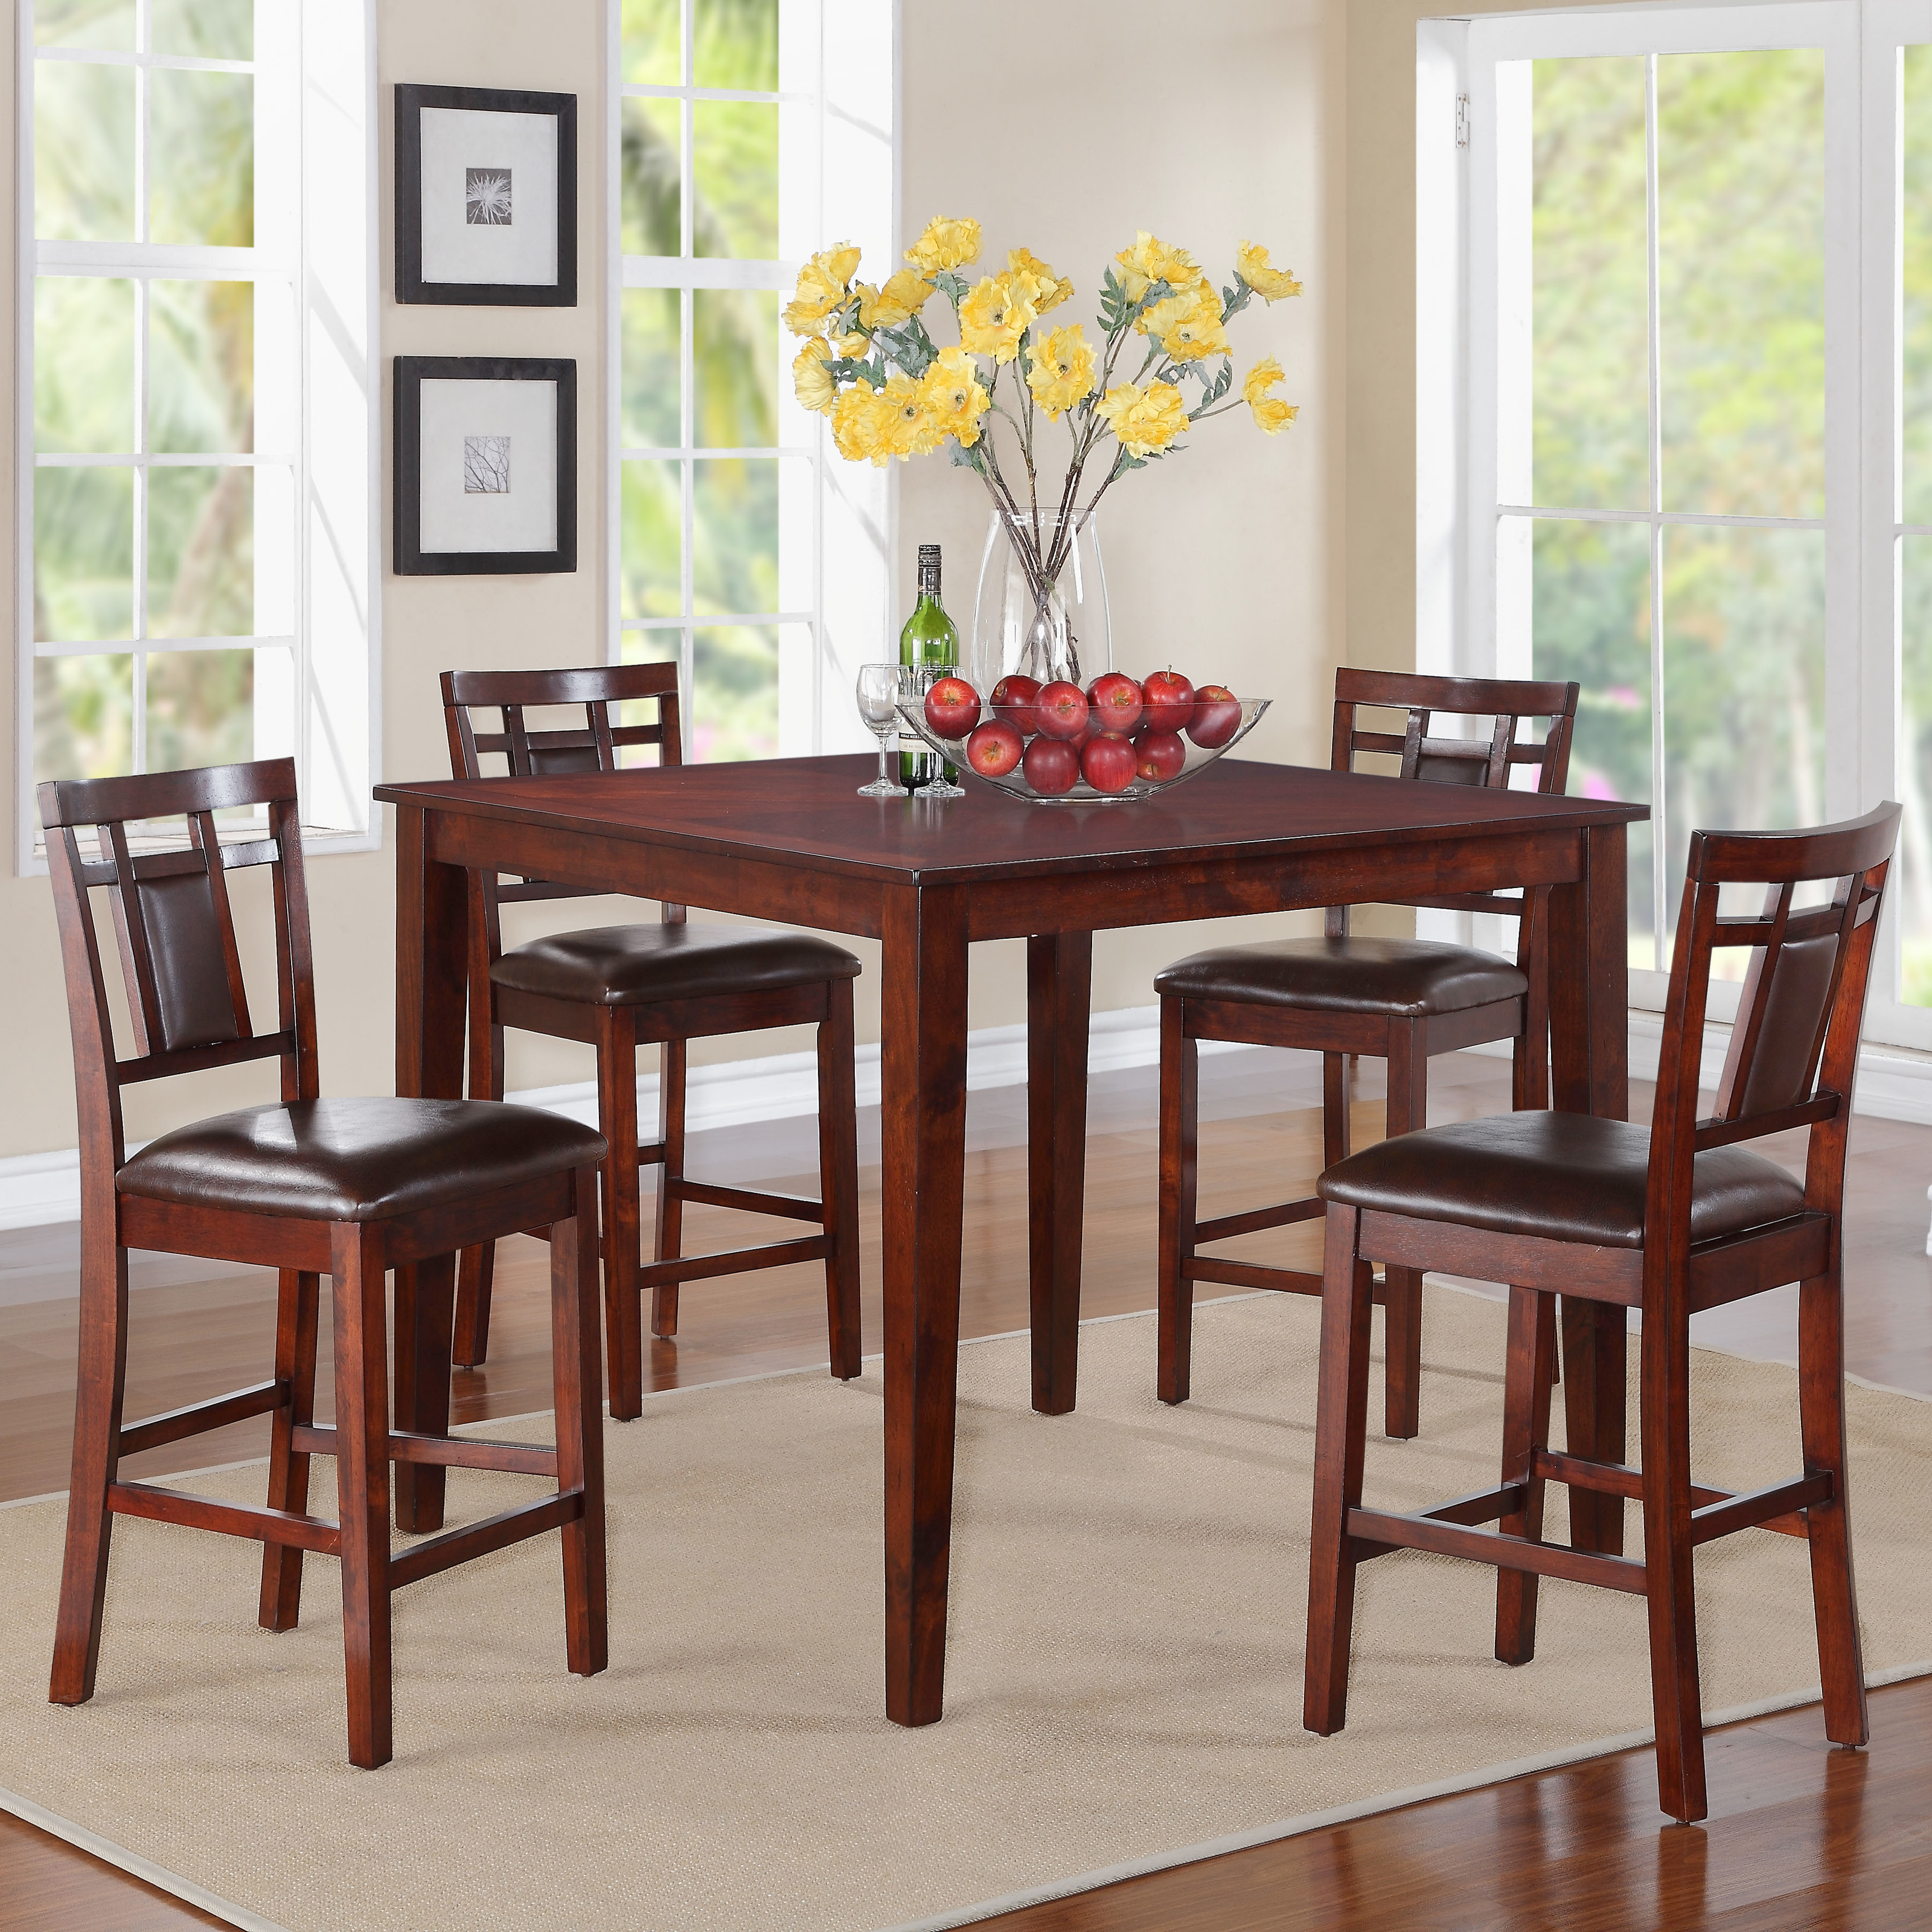 Standard Furniture Westlake 5 Piece Counter Height Dining